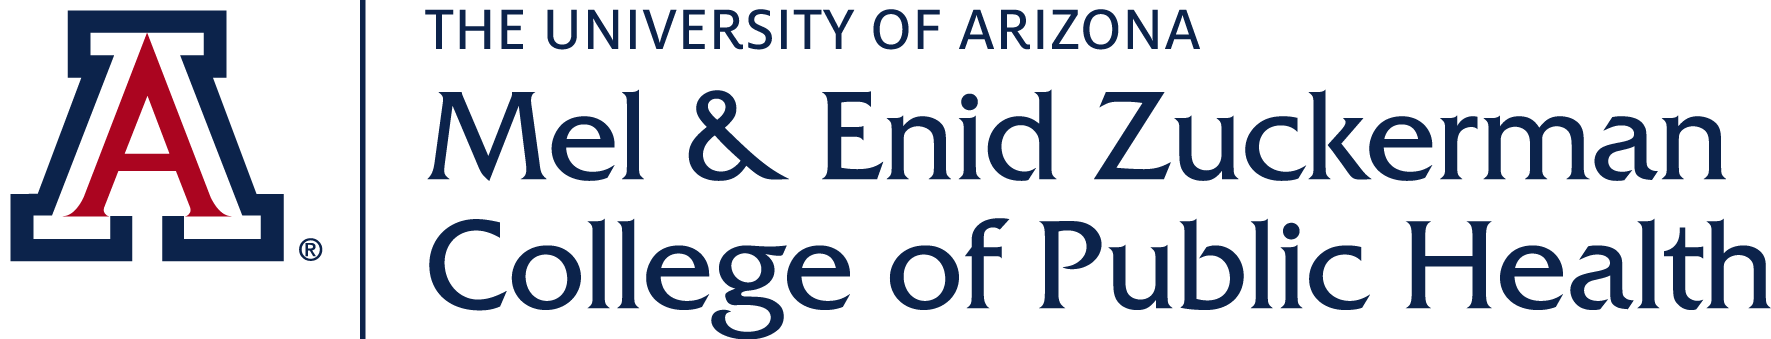 College of Public Health logo.png